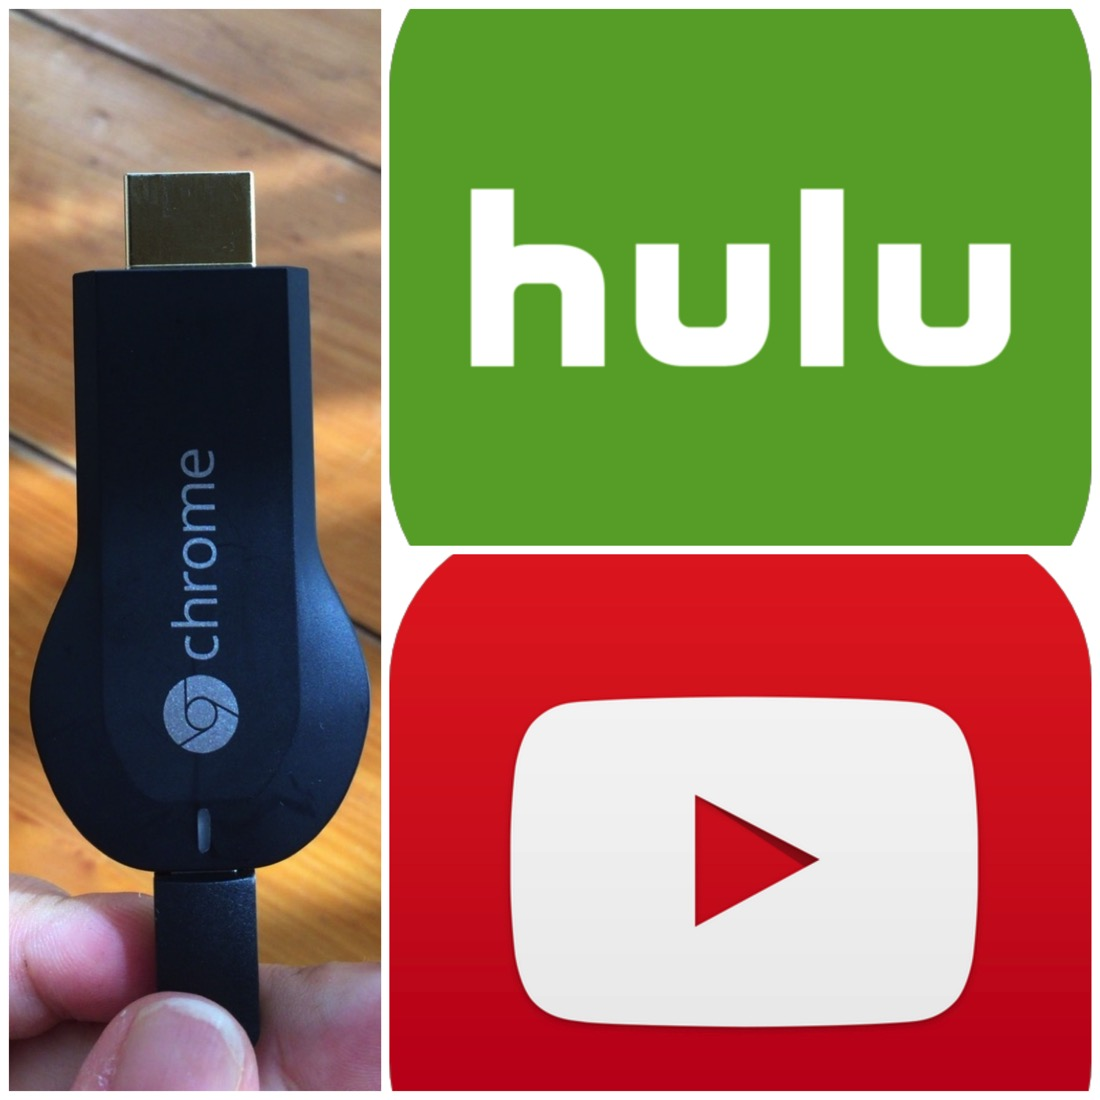 Chromecast hulu youtube